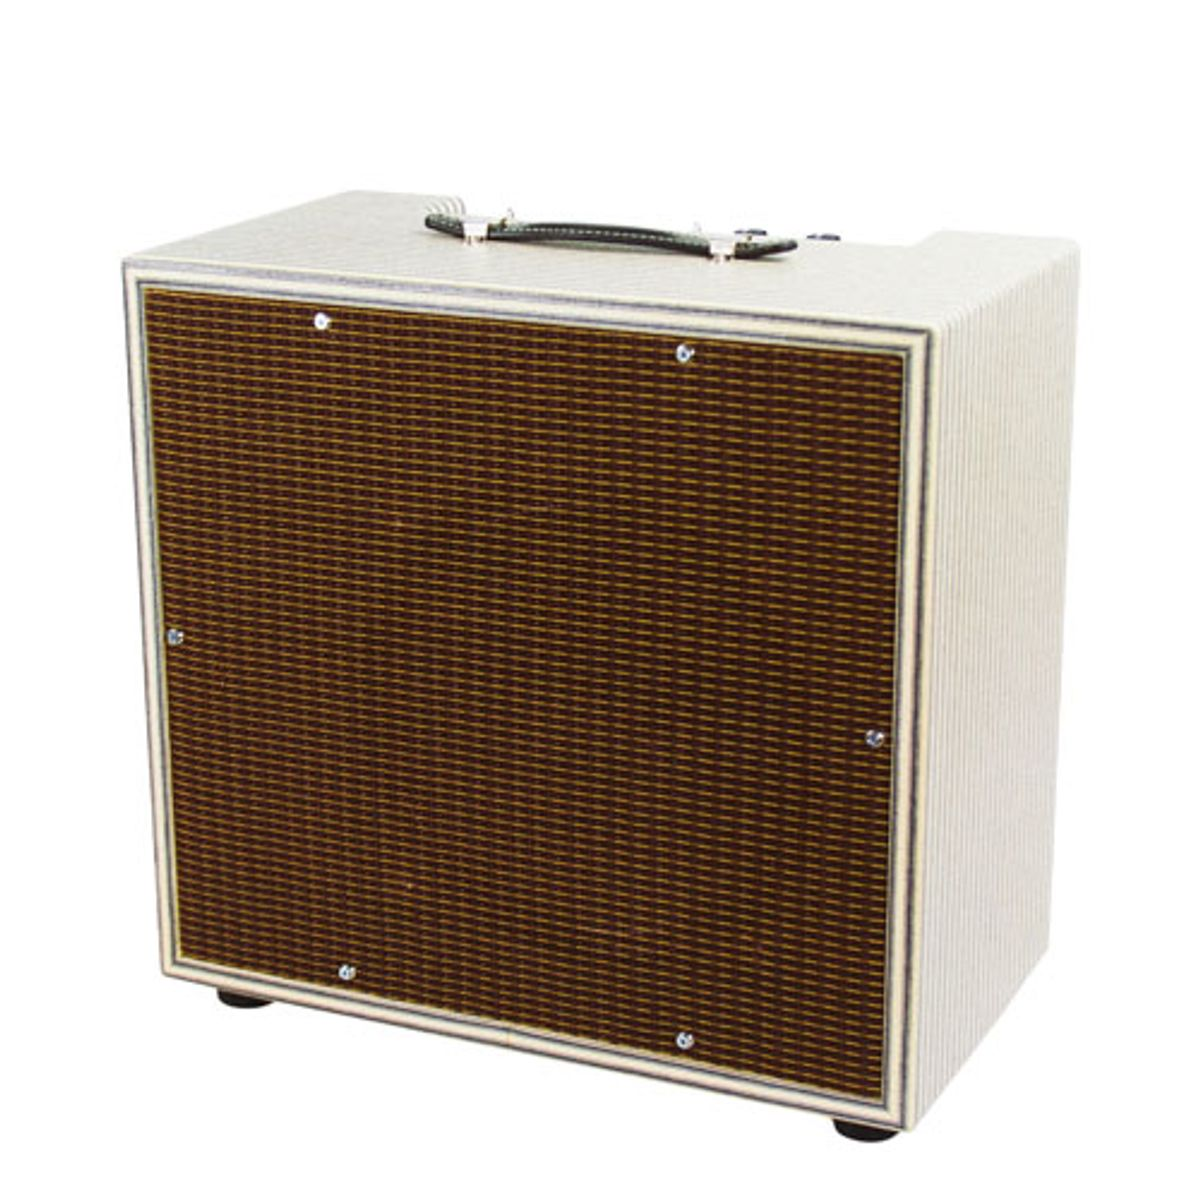 Benson Amps Introduces the Monarch Combo